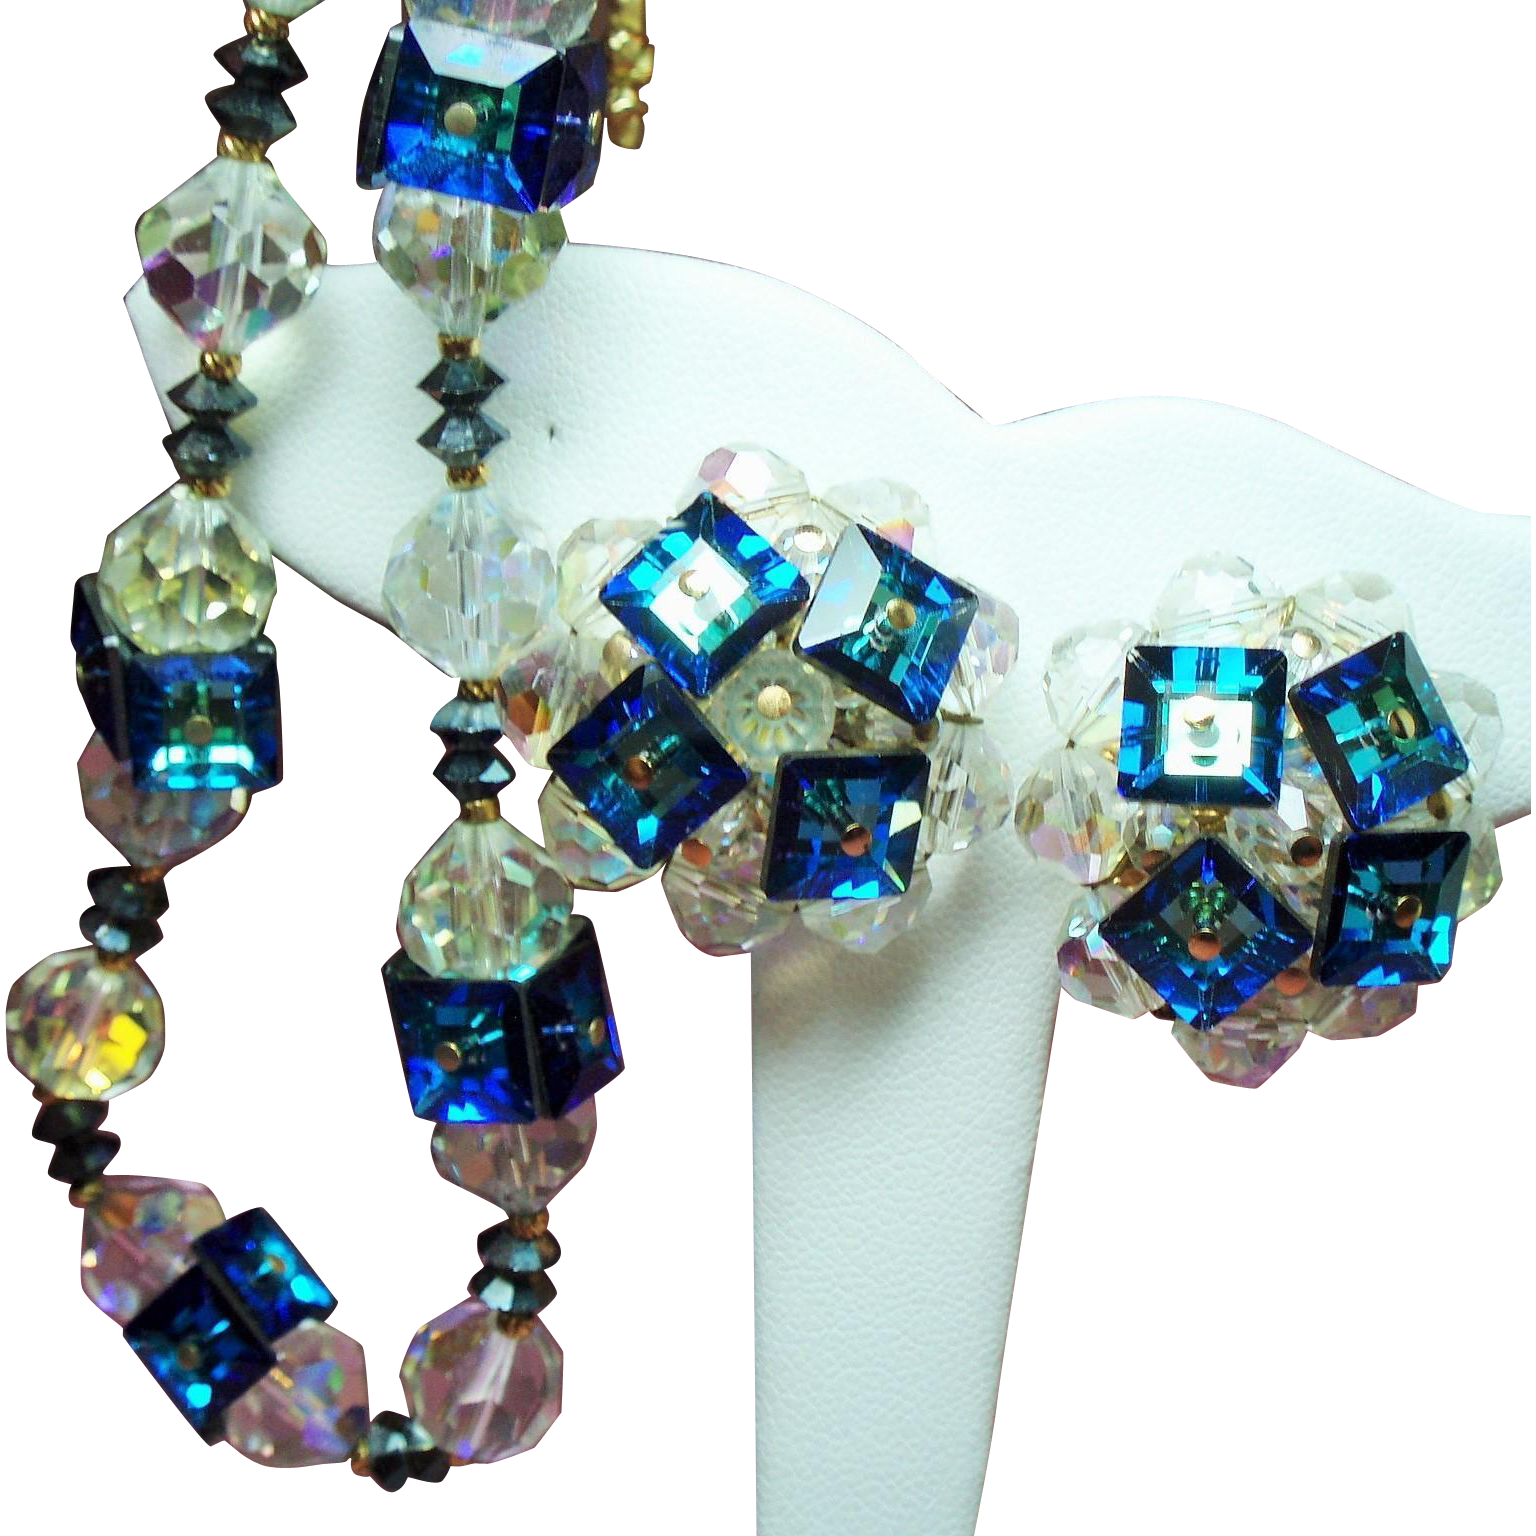 Vintage Vendome Caribbean Blue Cubes Faceted Crystal Beads Choker Necklace Earrings Demi Parure